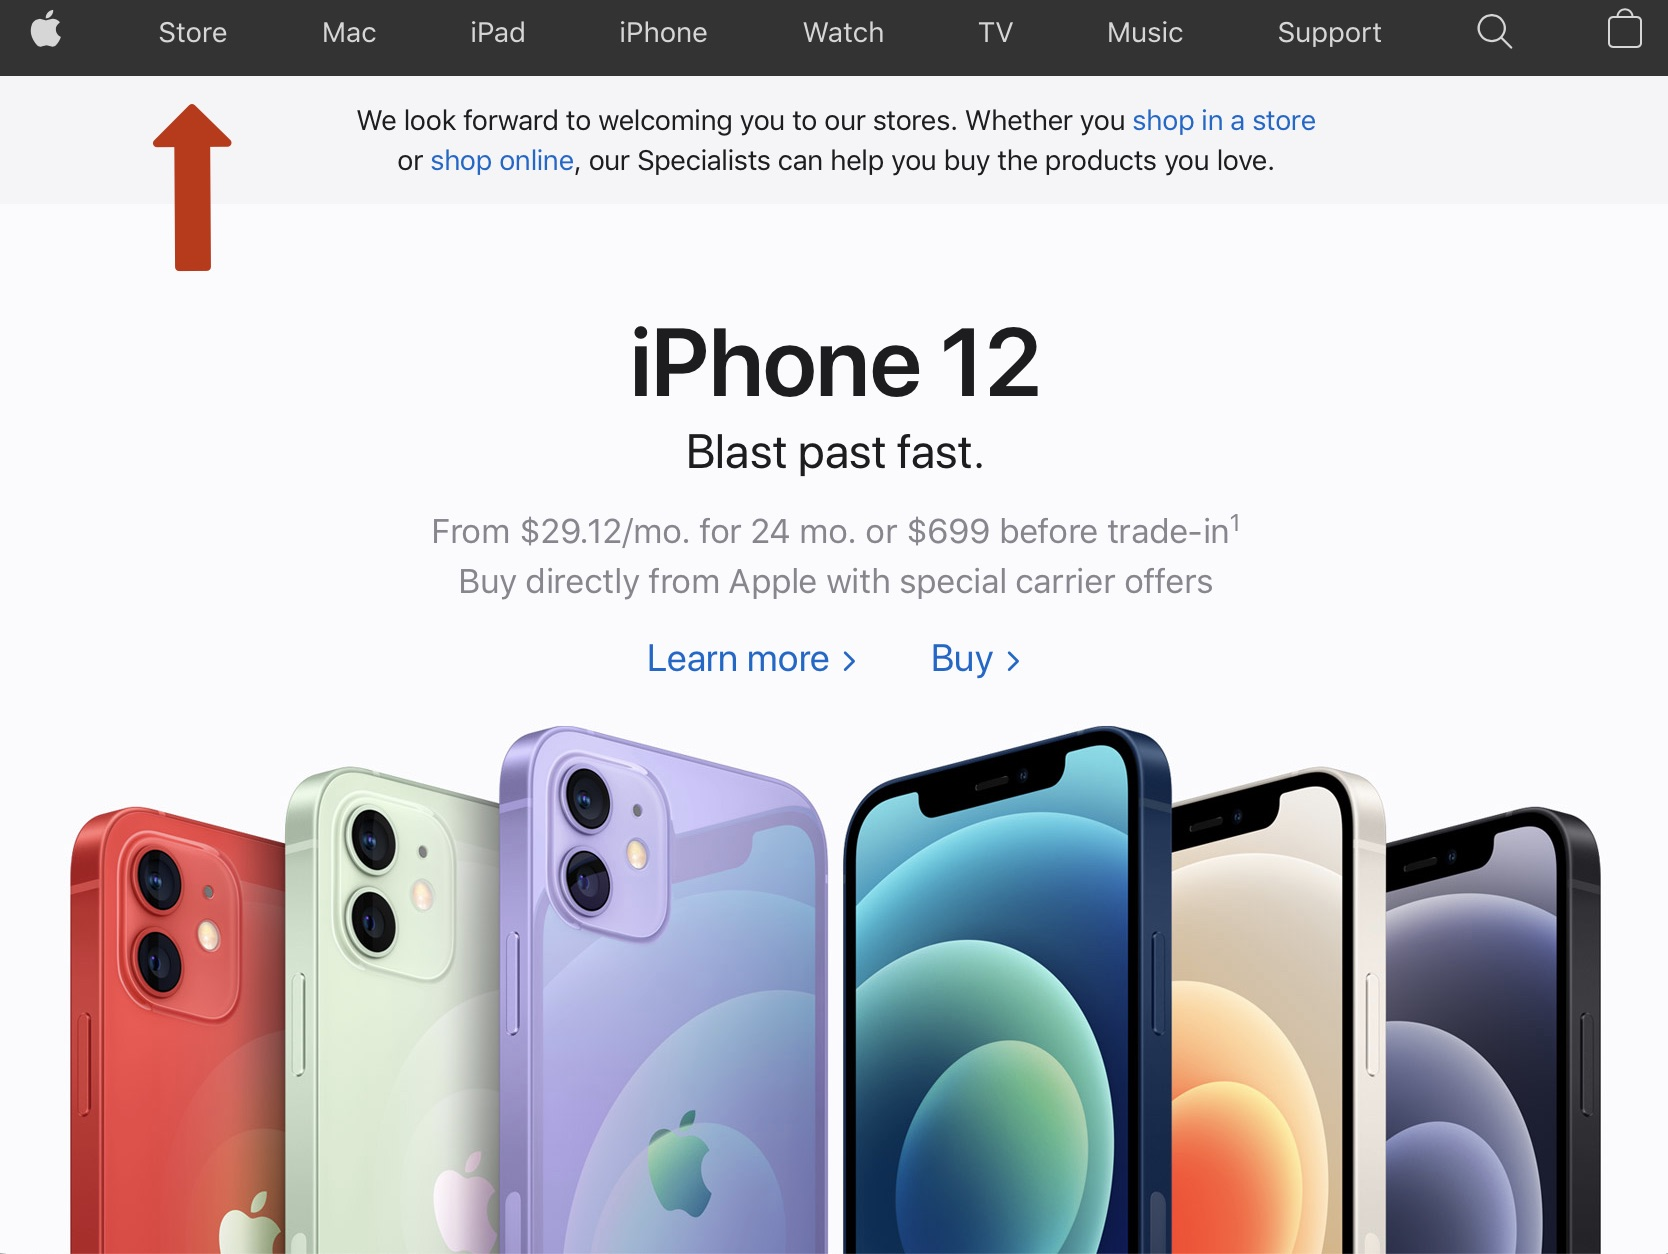 apple store new website section